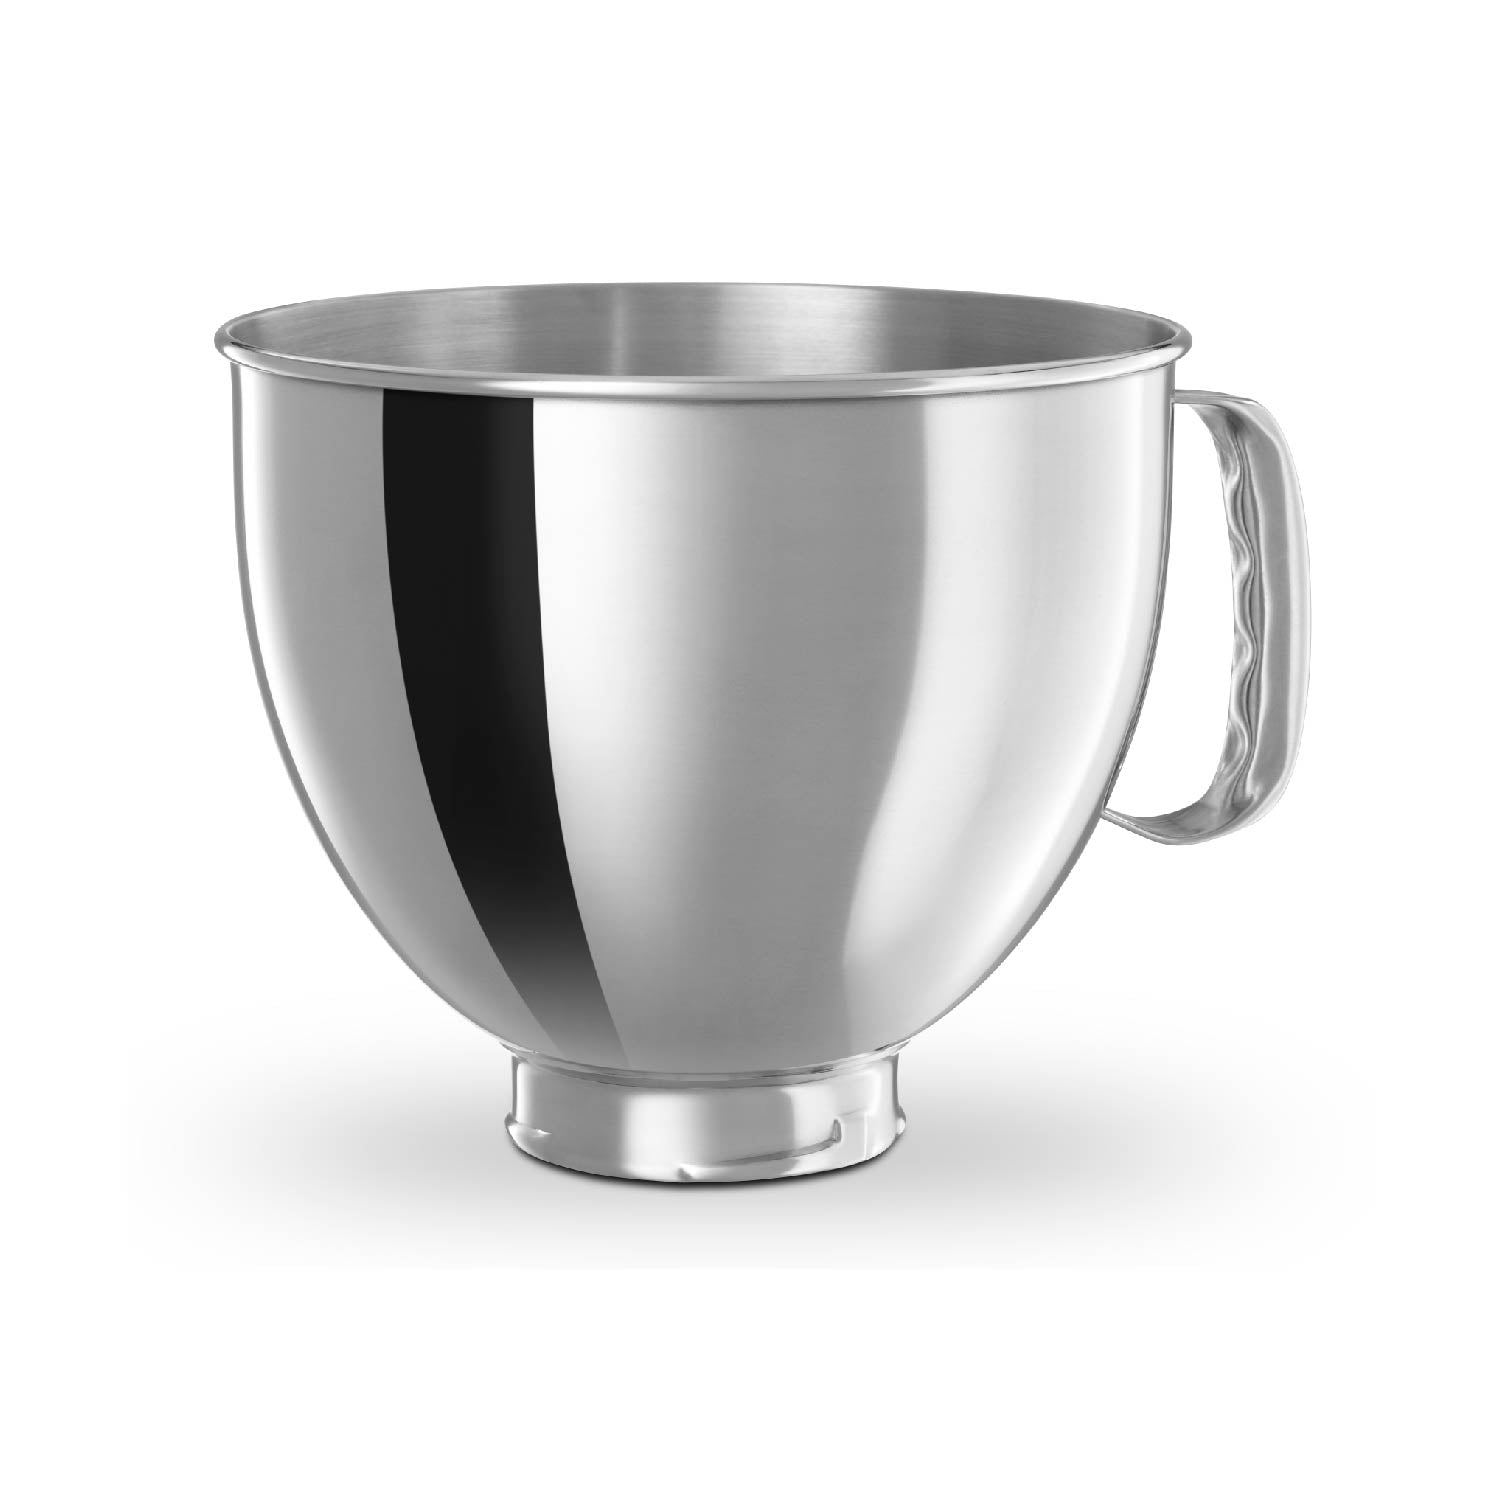 4.8L Stainless Steel Bowl with handle